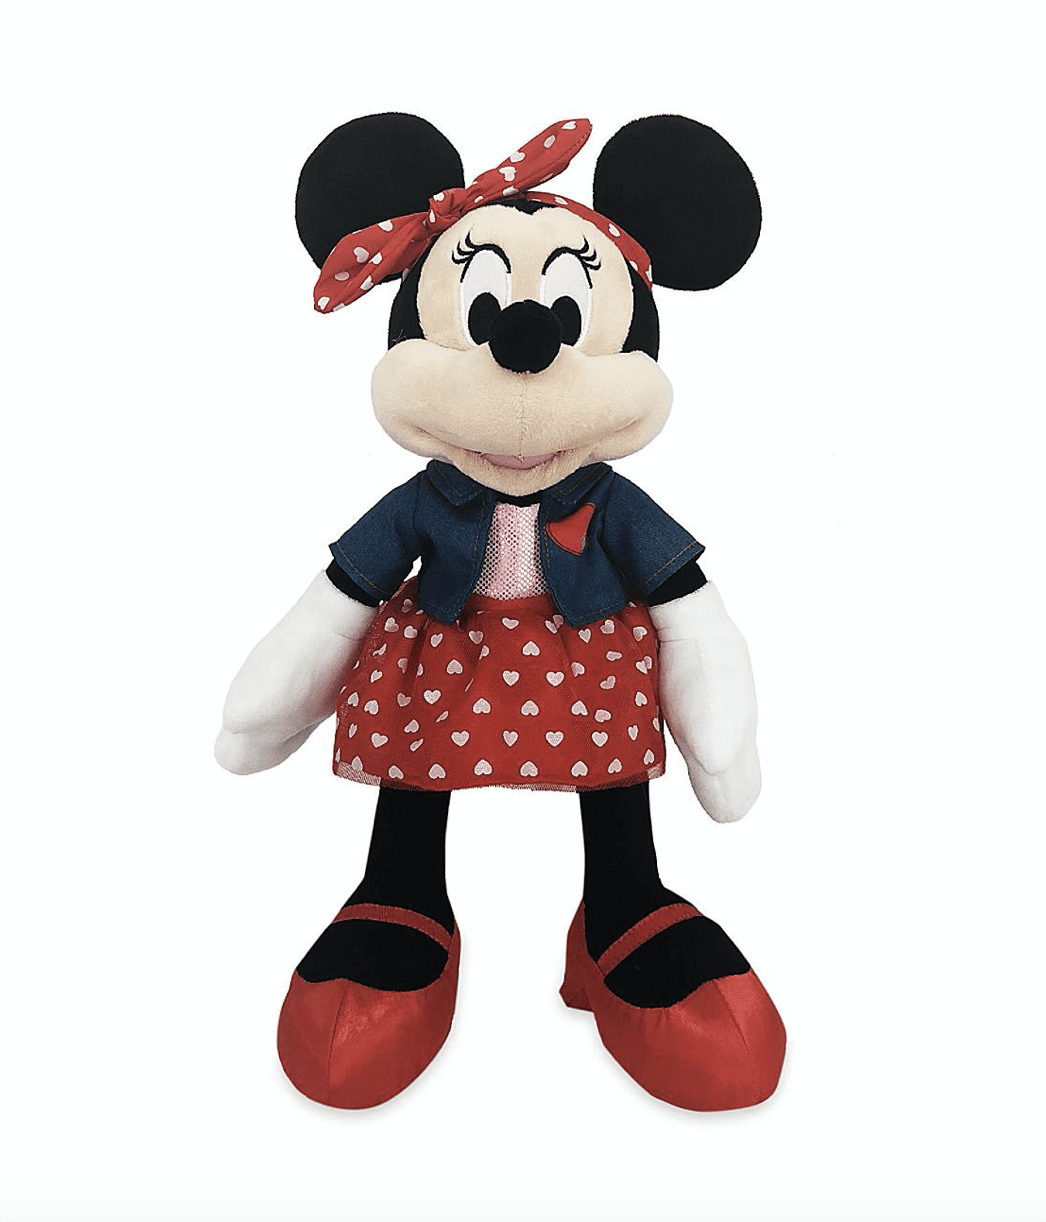 Disney Store: Up to 50% off sale + Free shipping